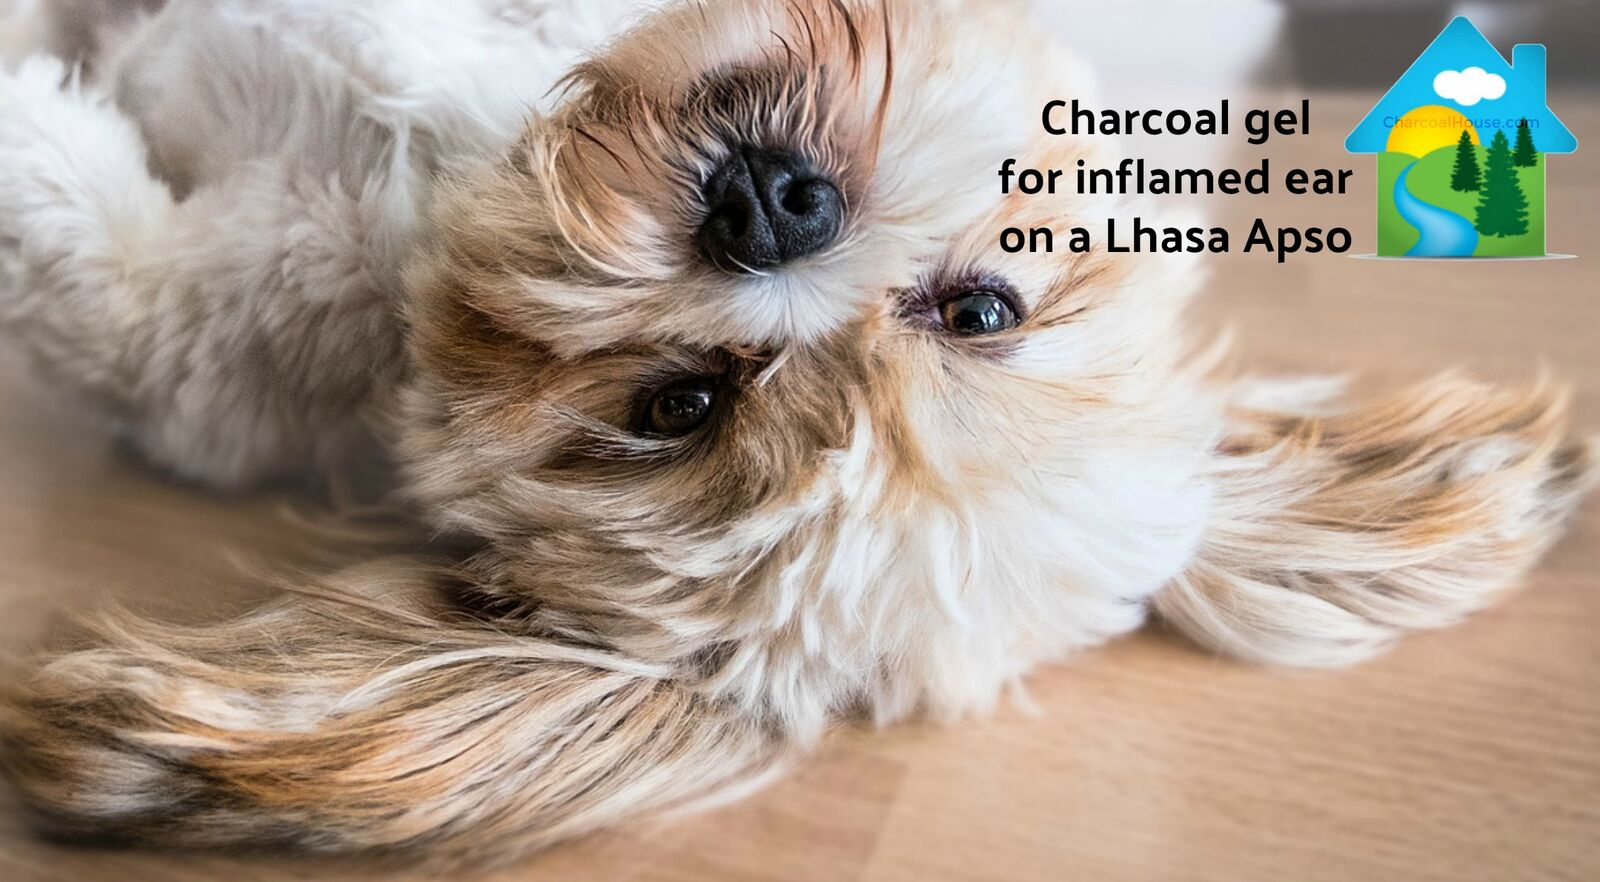 Charcoal for inflamed ear on dog header - Can Charcoal Help Inflamed Dog Ear?